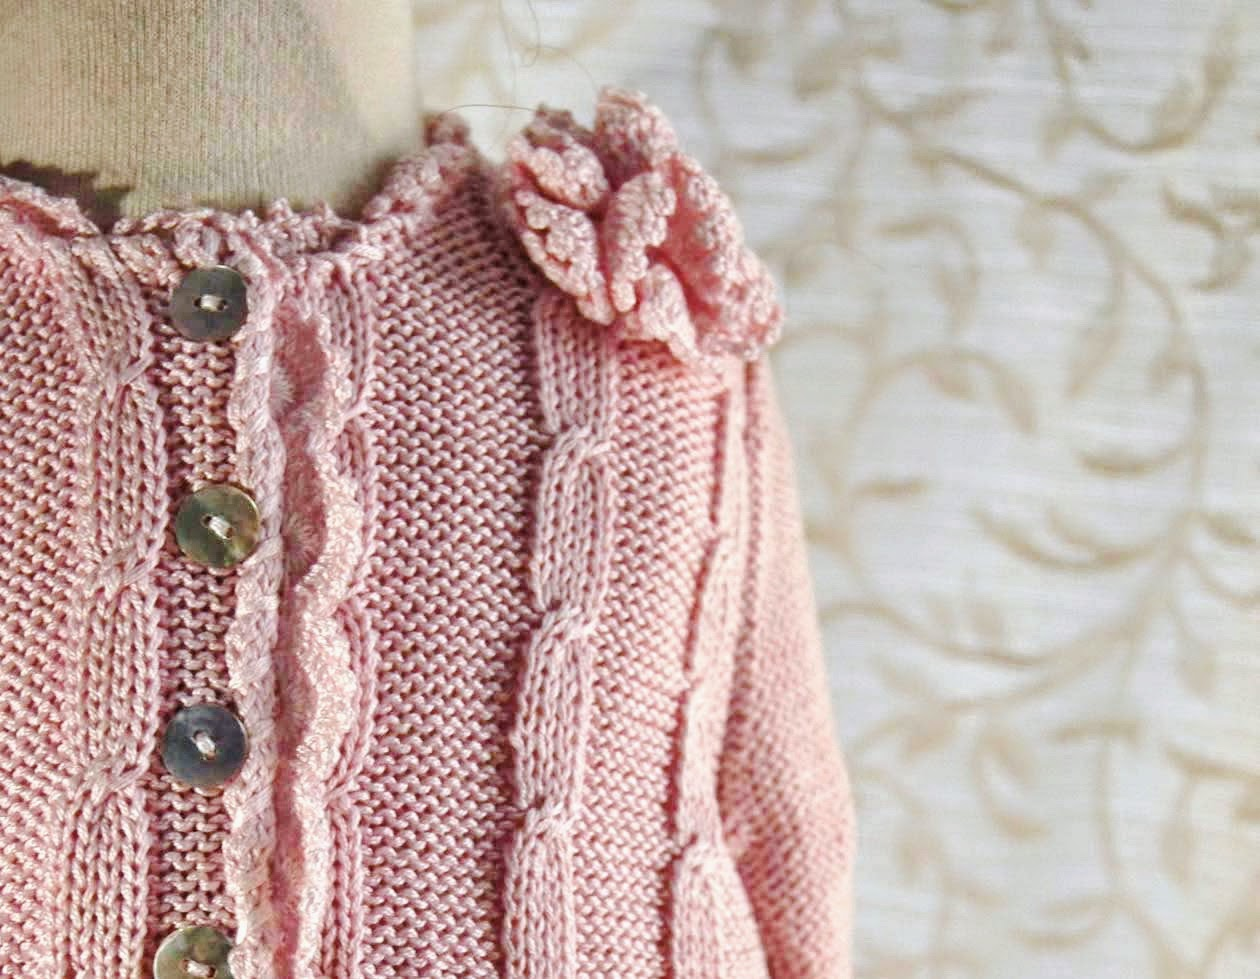 https://www.etsy.com/listing/180356802/cotton-knit-pink-baby-girl-kim-coat?ref=shop_home_active_14